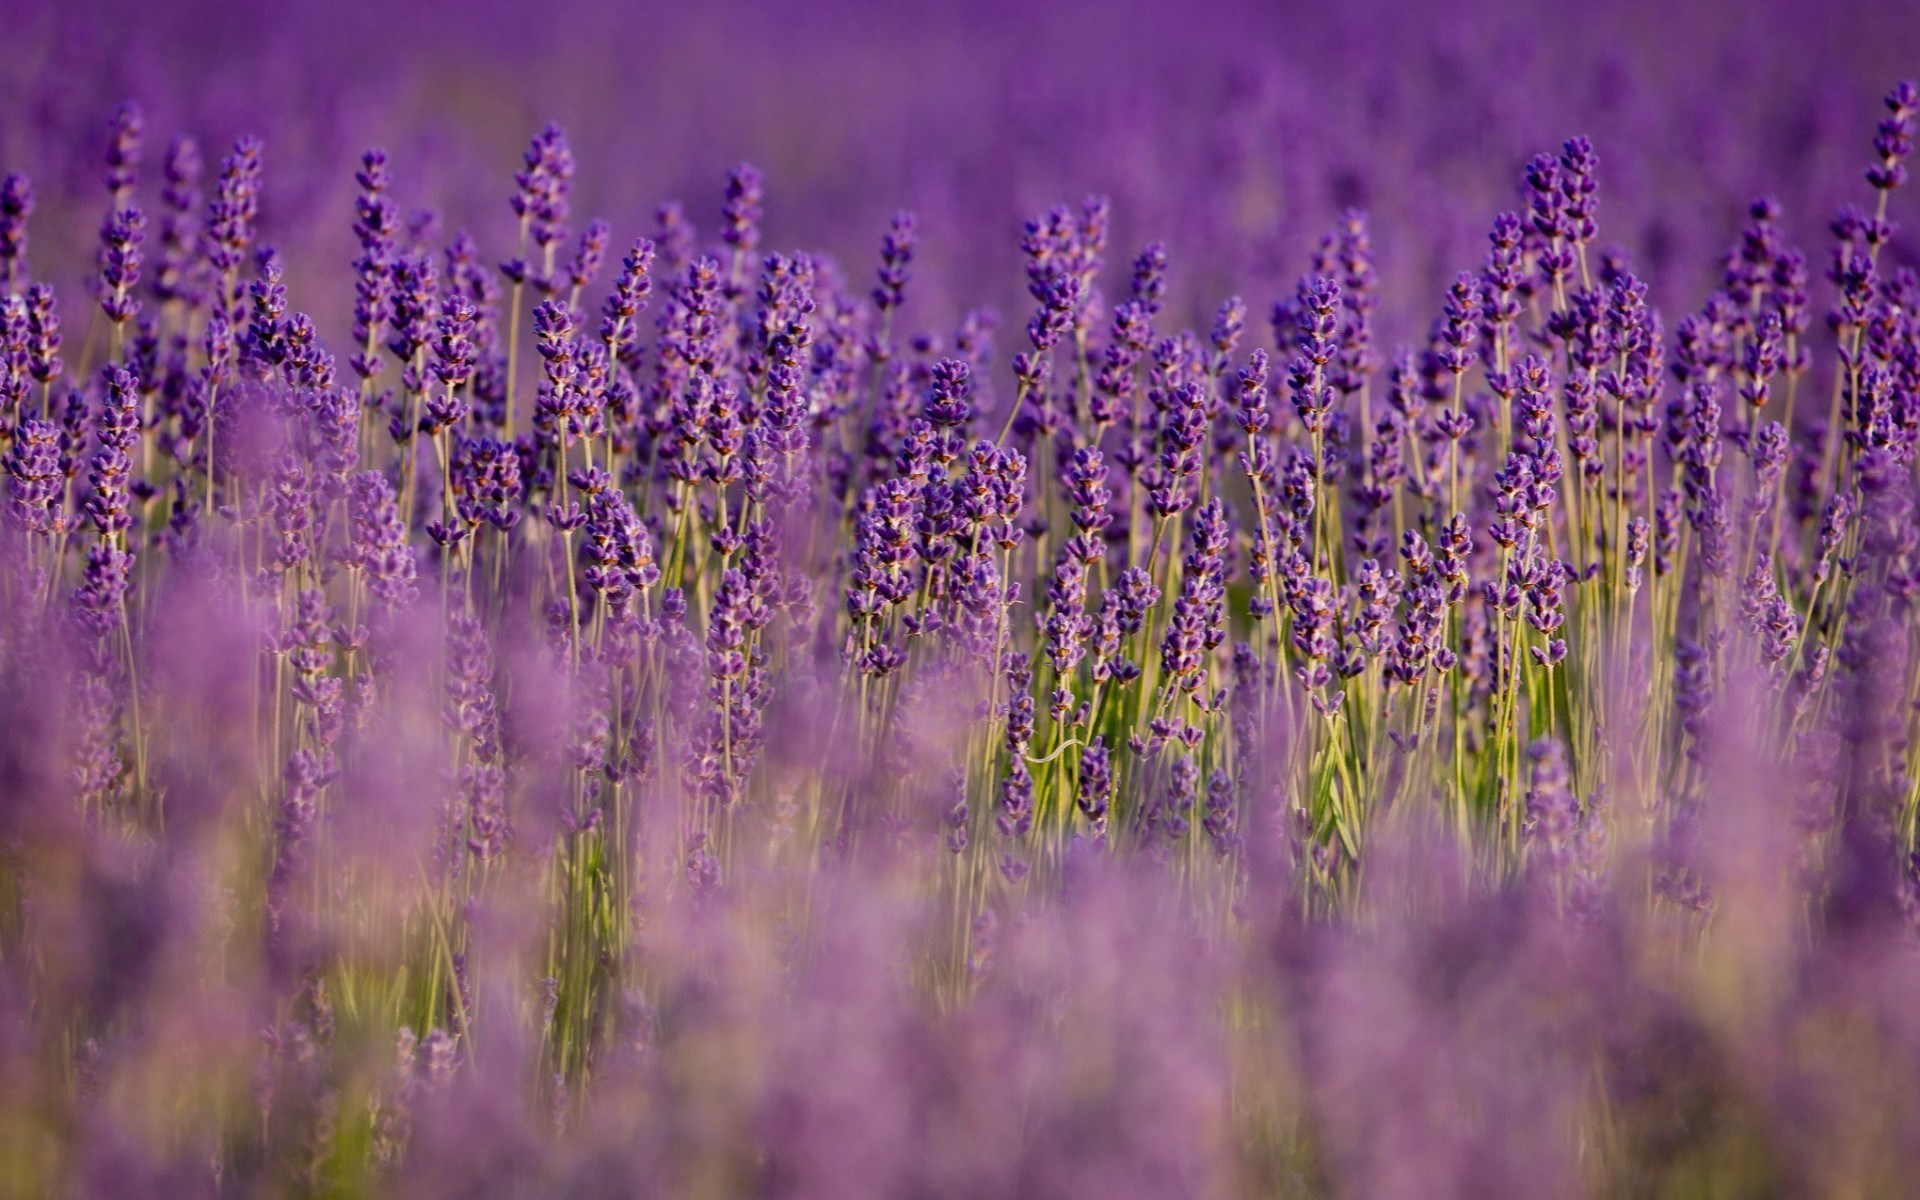 Lavender Computer Wallpapers Desktop Backgrounds